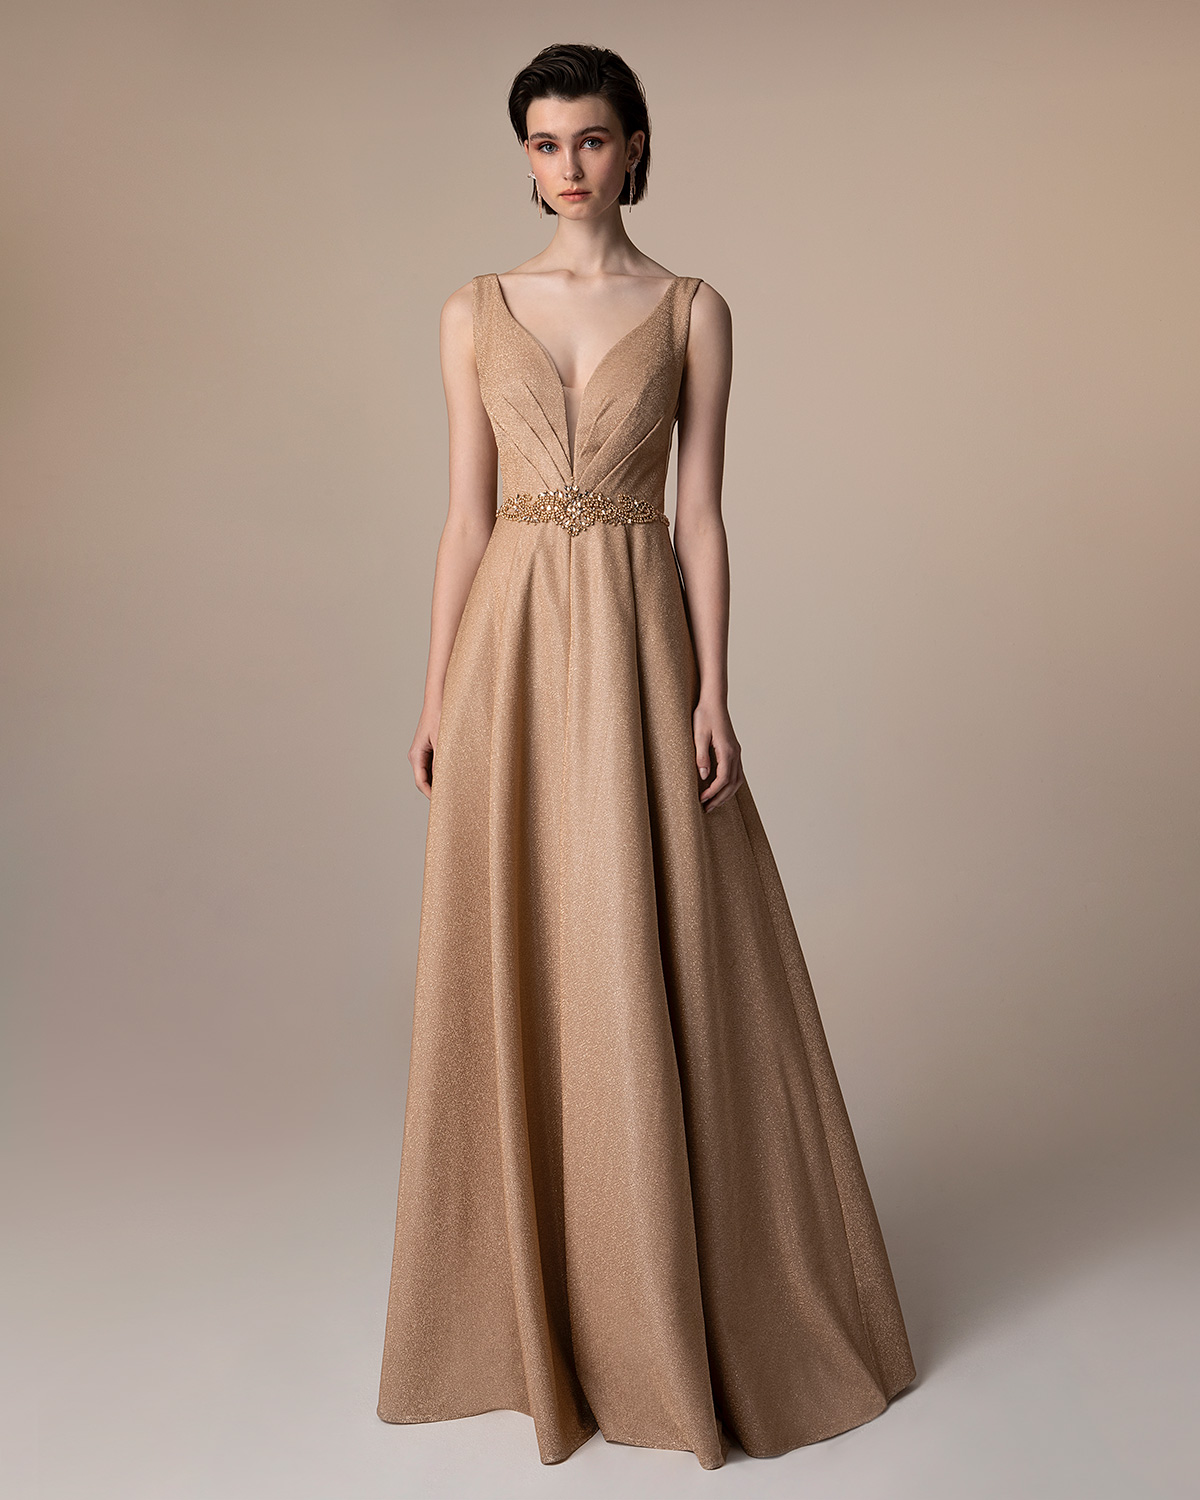 Evening Dresses / Long evening dress with shining fabric and beaded waist